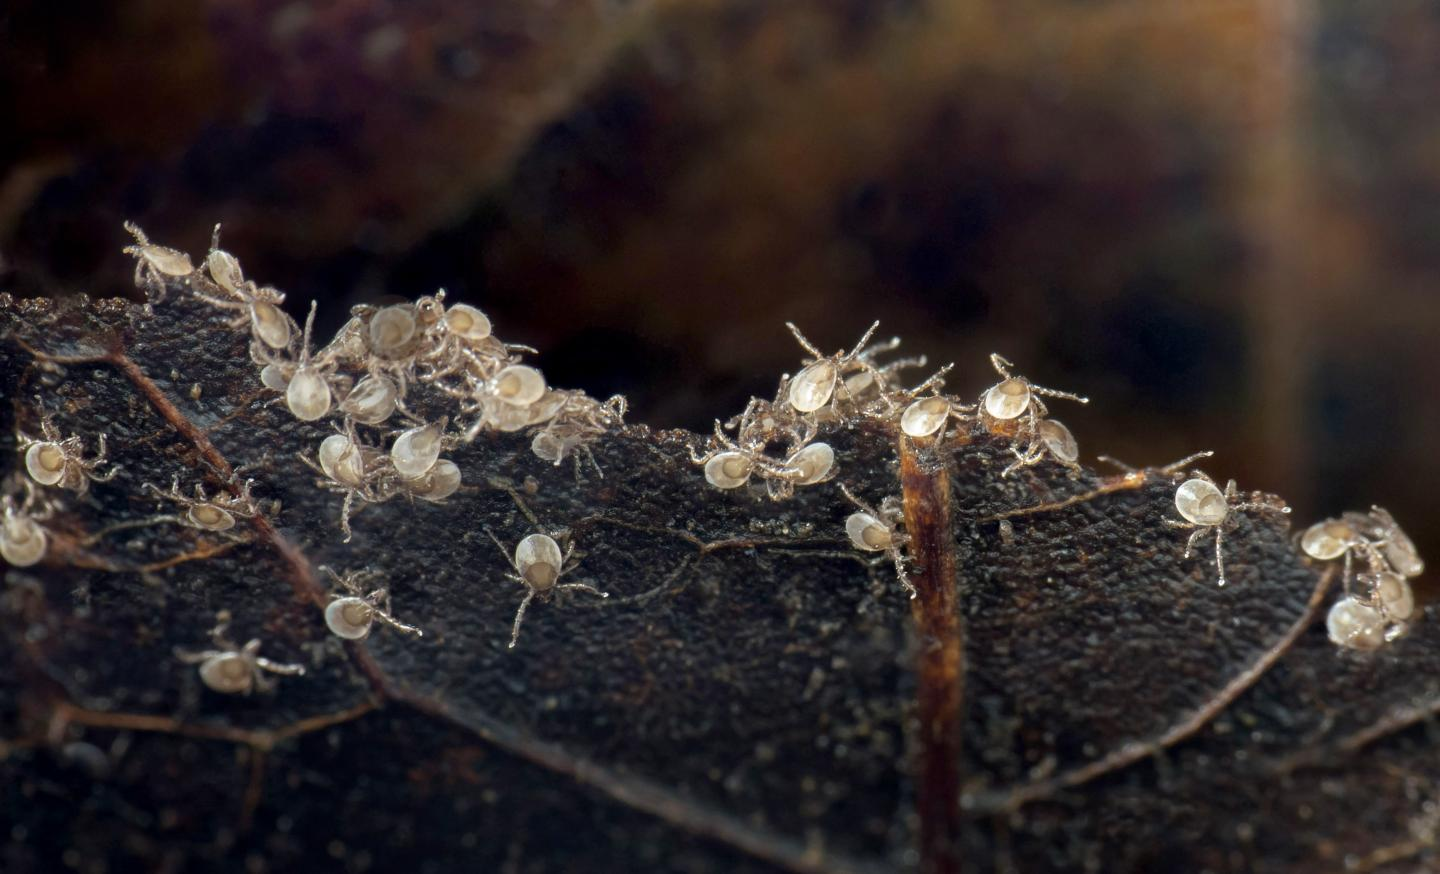 These larval black-legged ticks, about two months old, were photographed in leaf litter in eastern Tennessee.